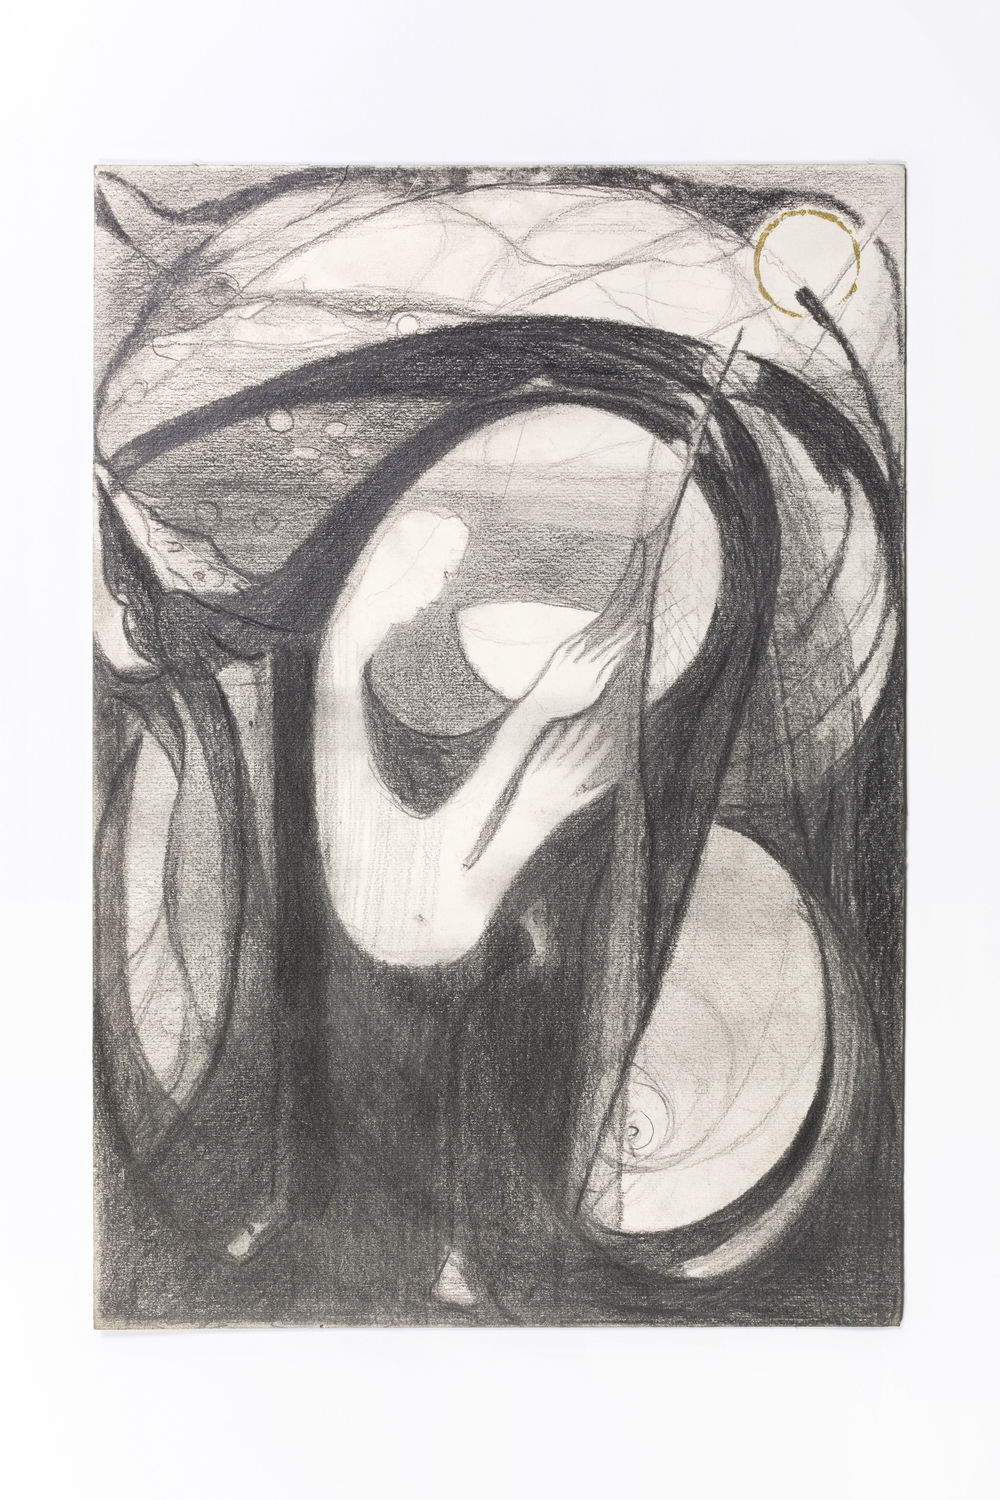 Marisa Merz, Untitled, n.d.